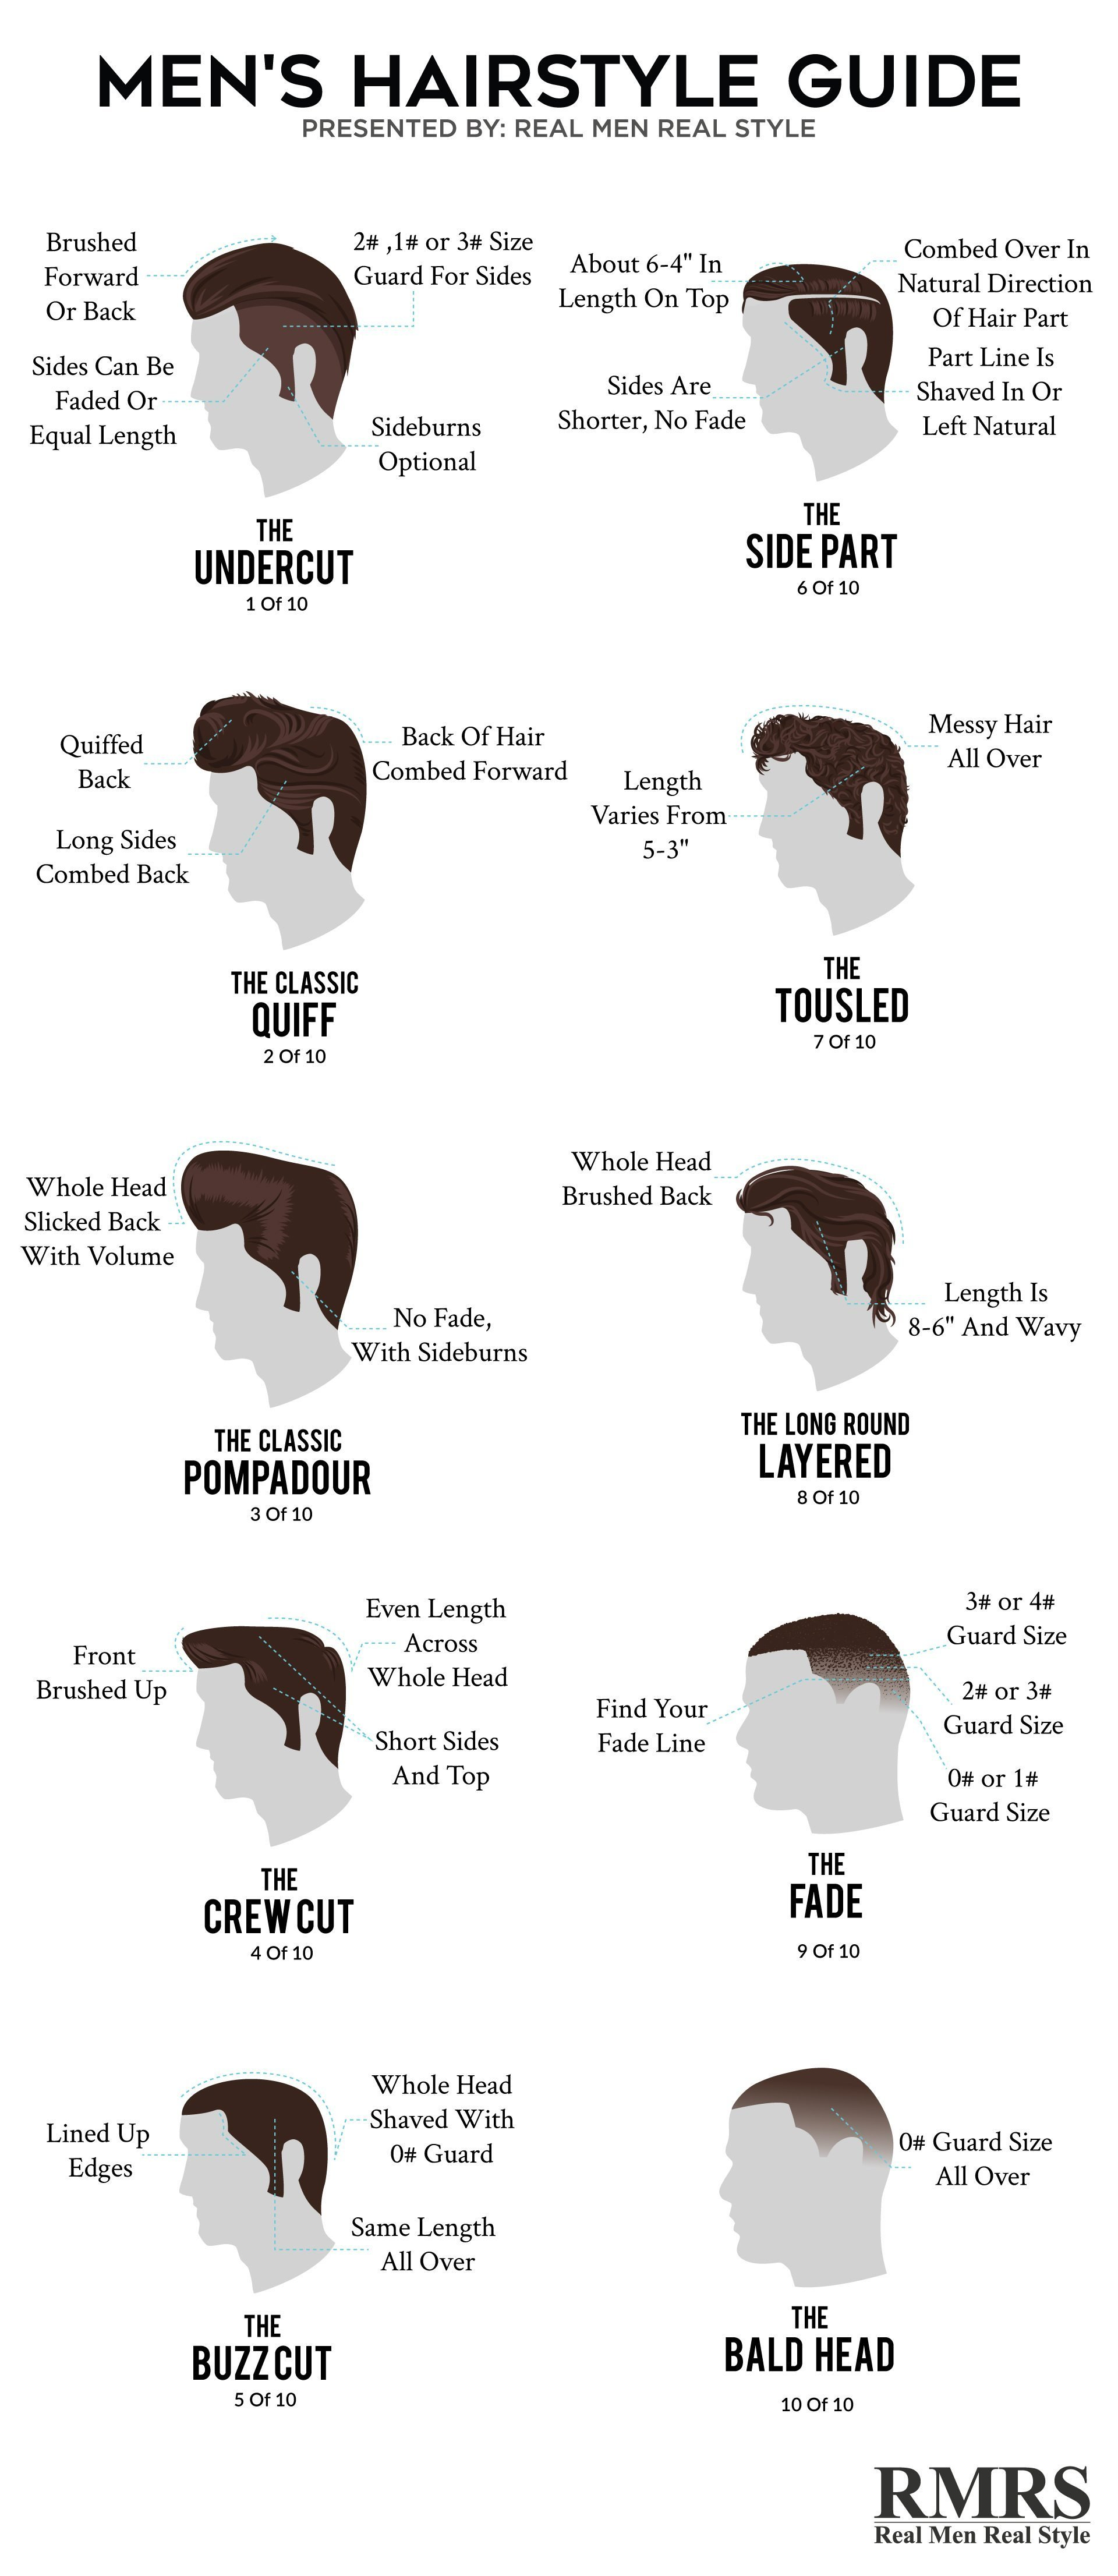 The Best The 10 Best Hair Styles For Men Attraction A Man S Pictures